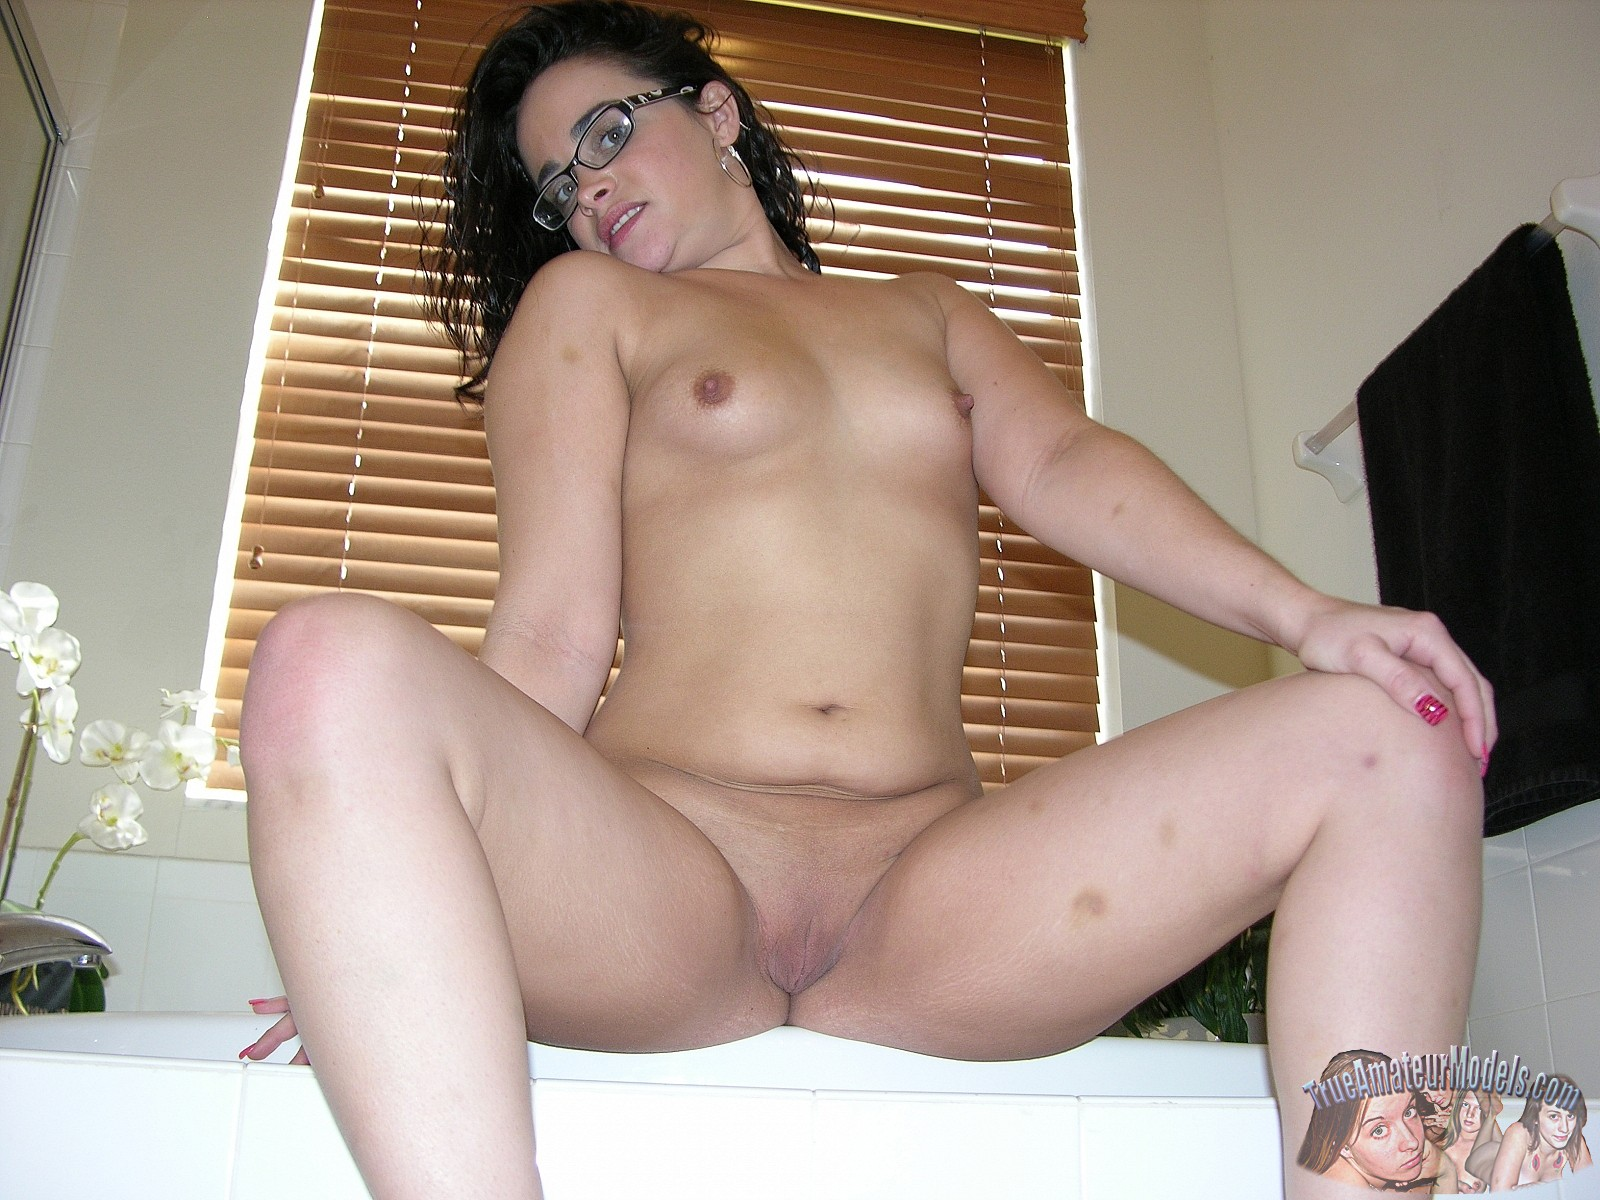 amateur sophie True nude model